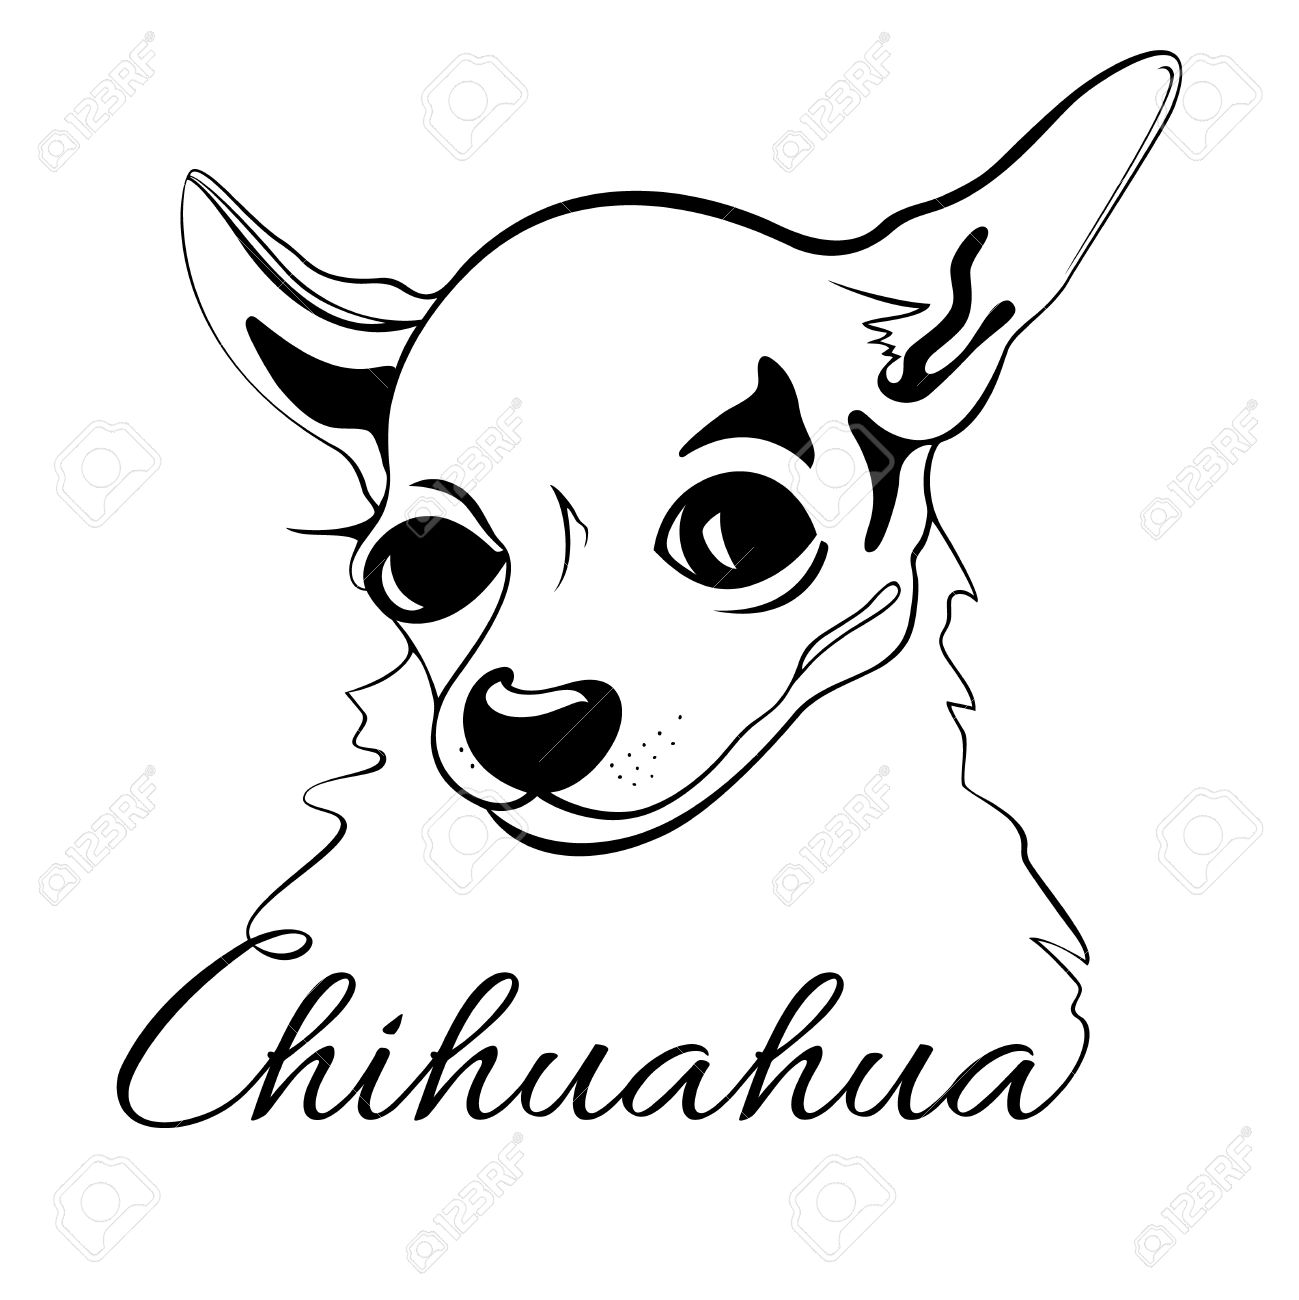 1299x1300 Outline Drawing Of The Dog's Head And The Words Chihuahua Royalty